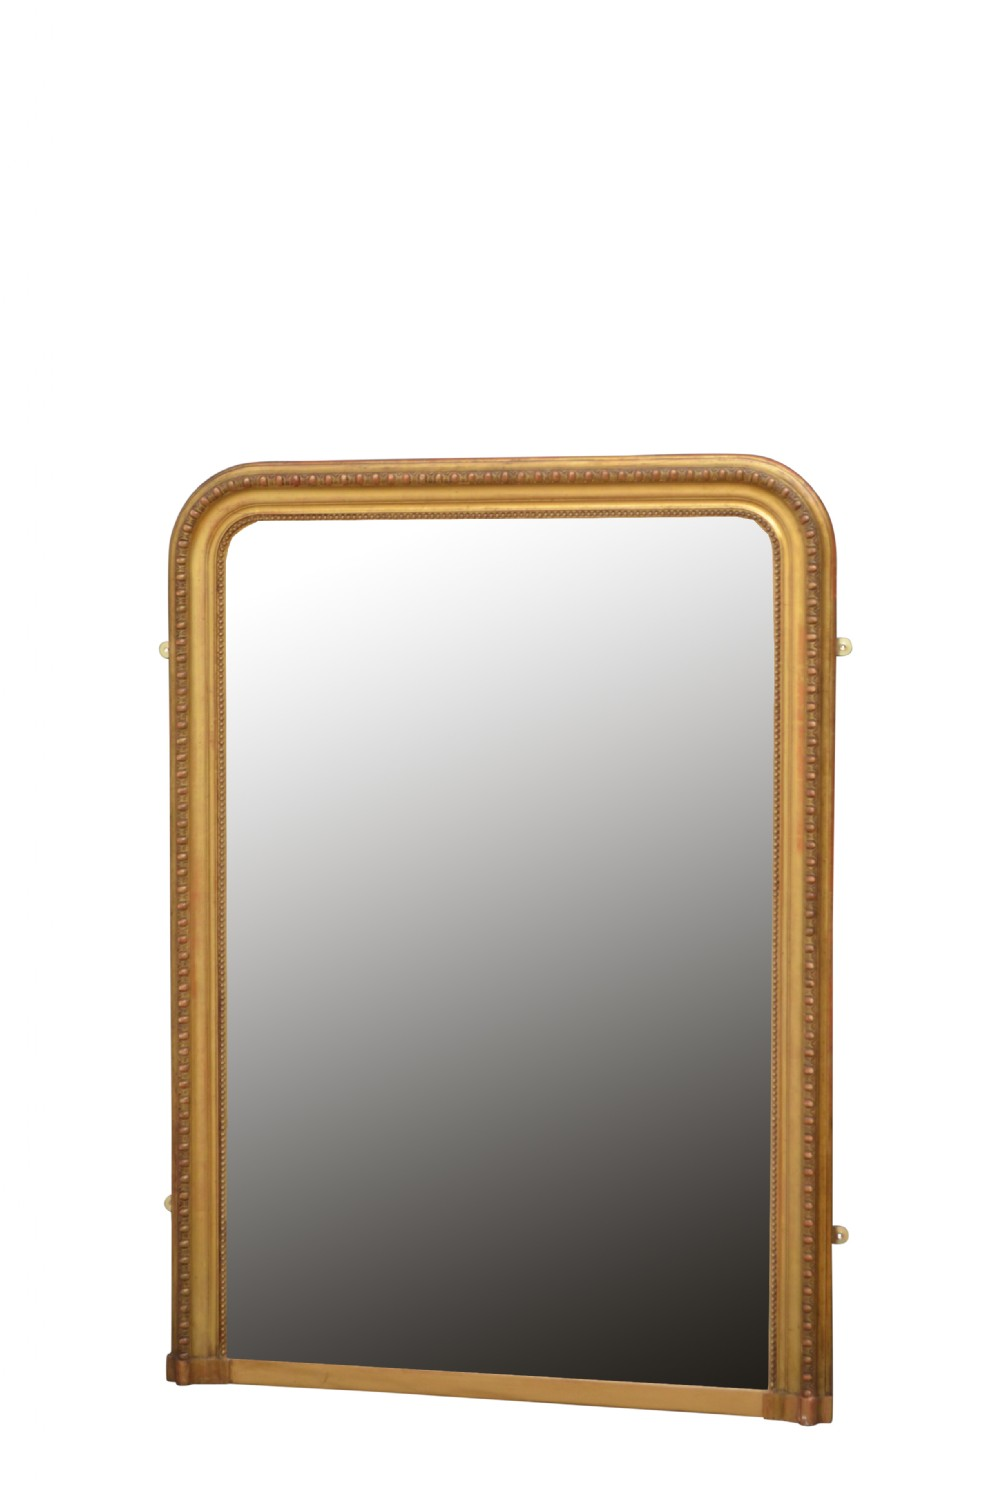 tall 19th century gilt mirror